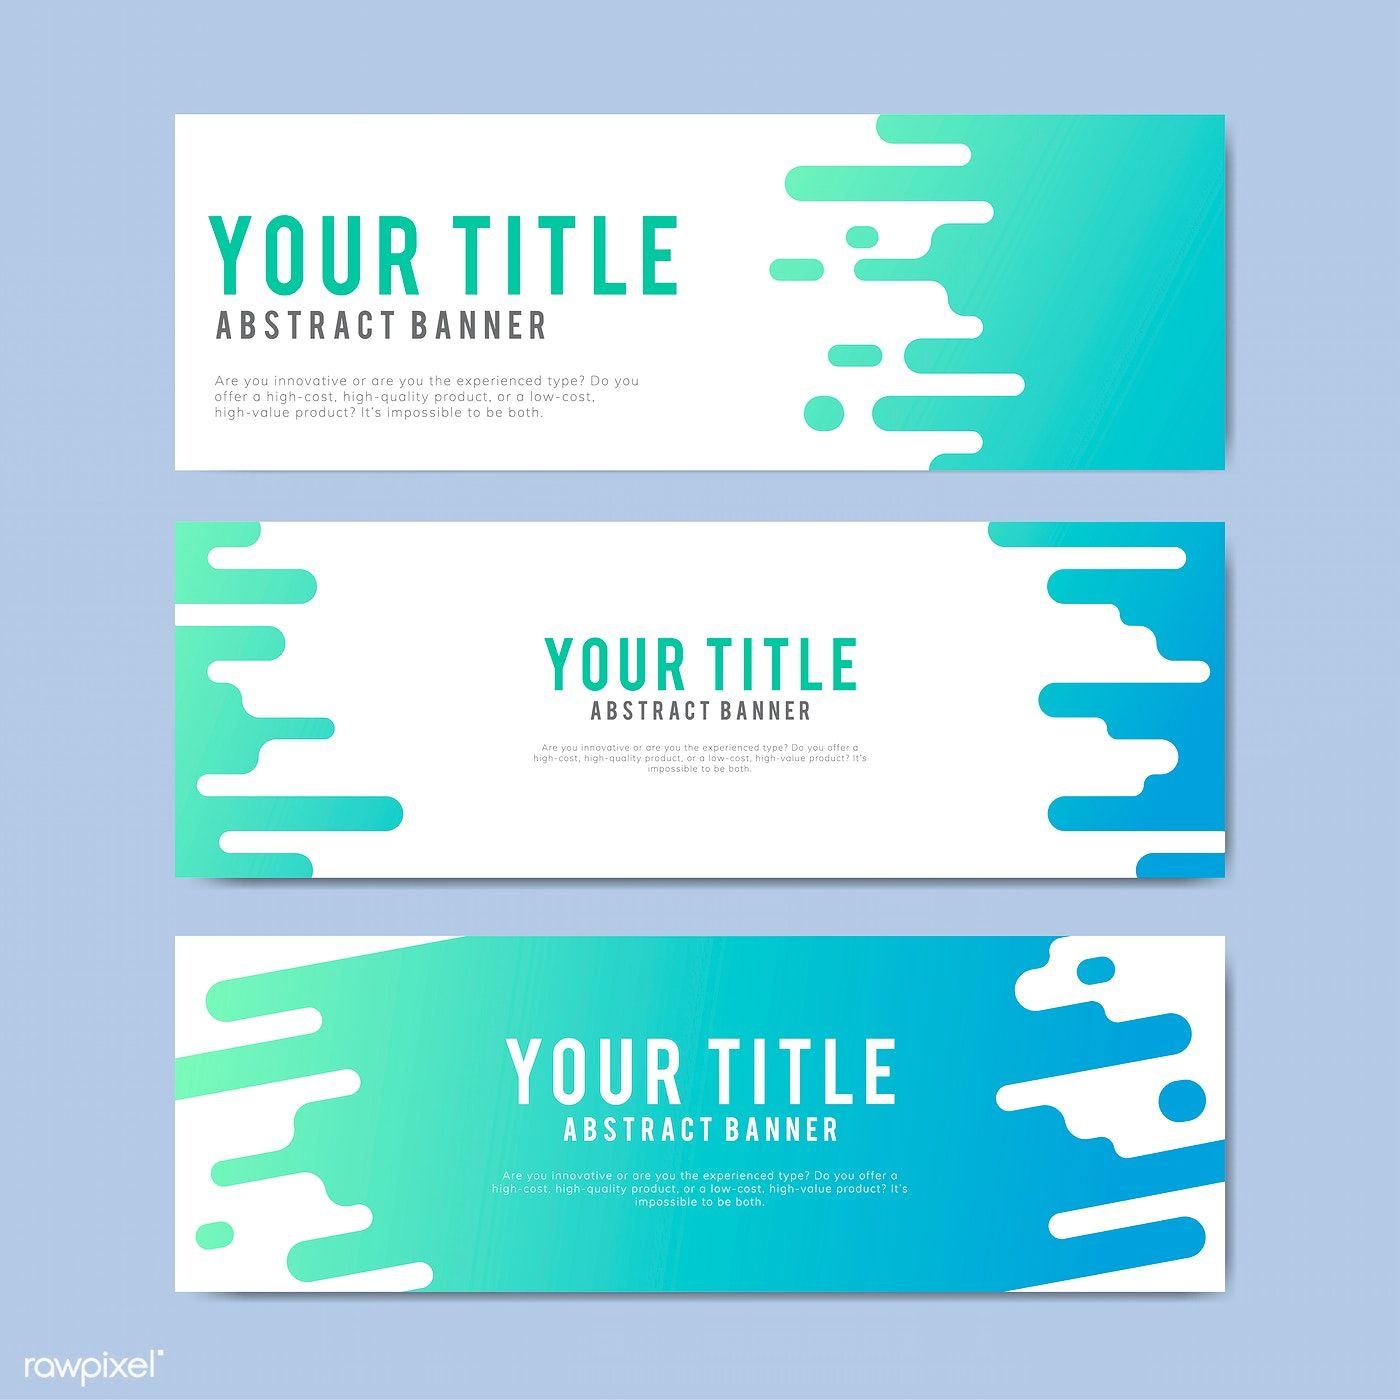 Colorful and abstract banner design templates free image